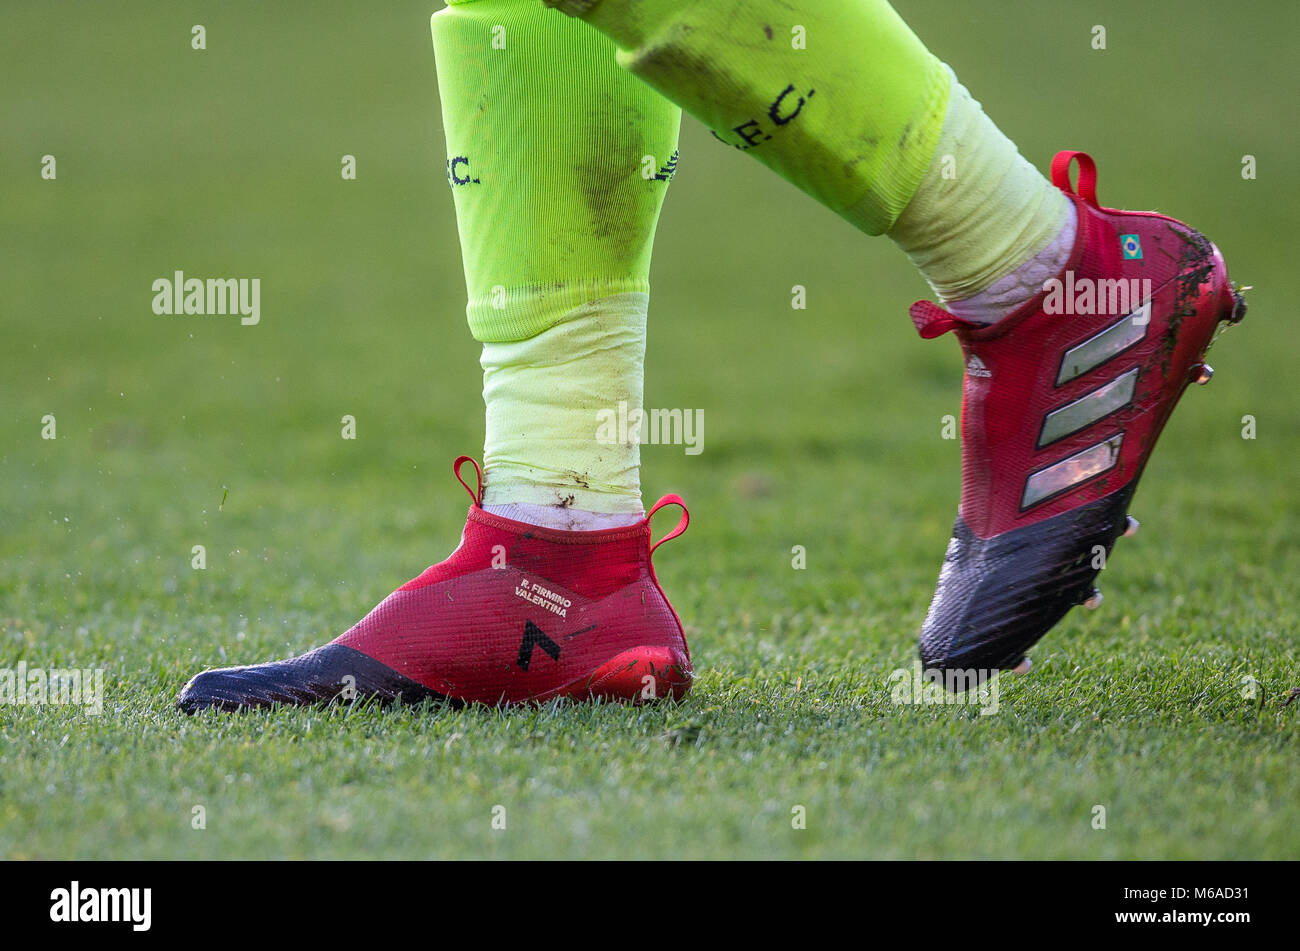 6ca88522512f Roberto Firmino of Liverpool socks   personalised adidas football boots  during the EPL - Premier League match between Bournemouth and Liverpool at  the